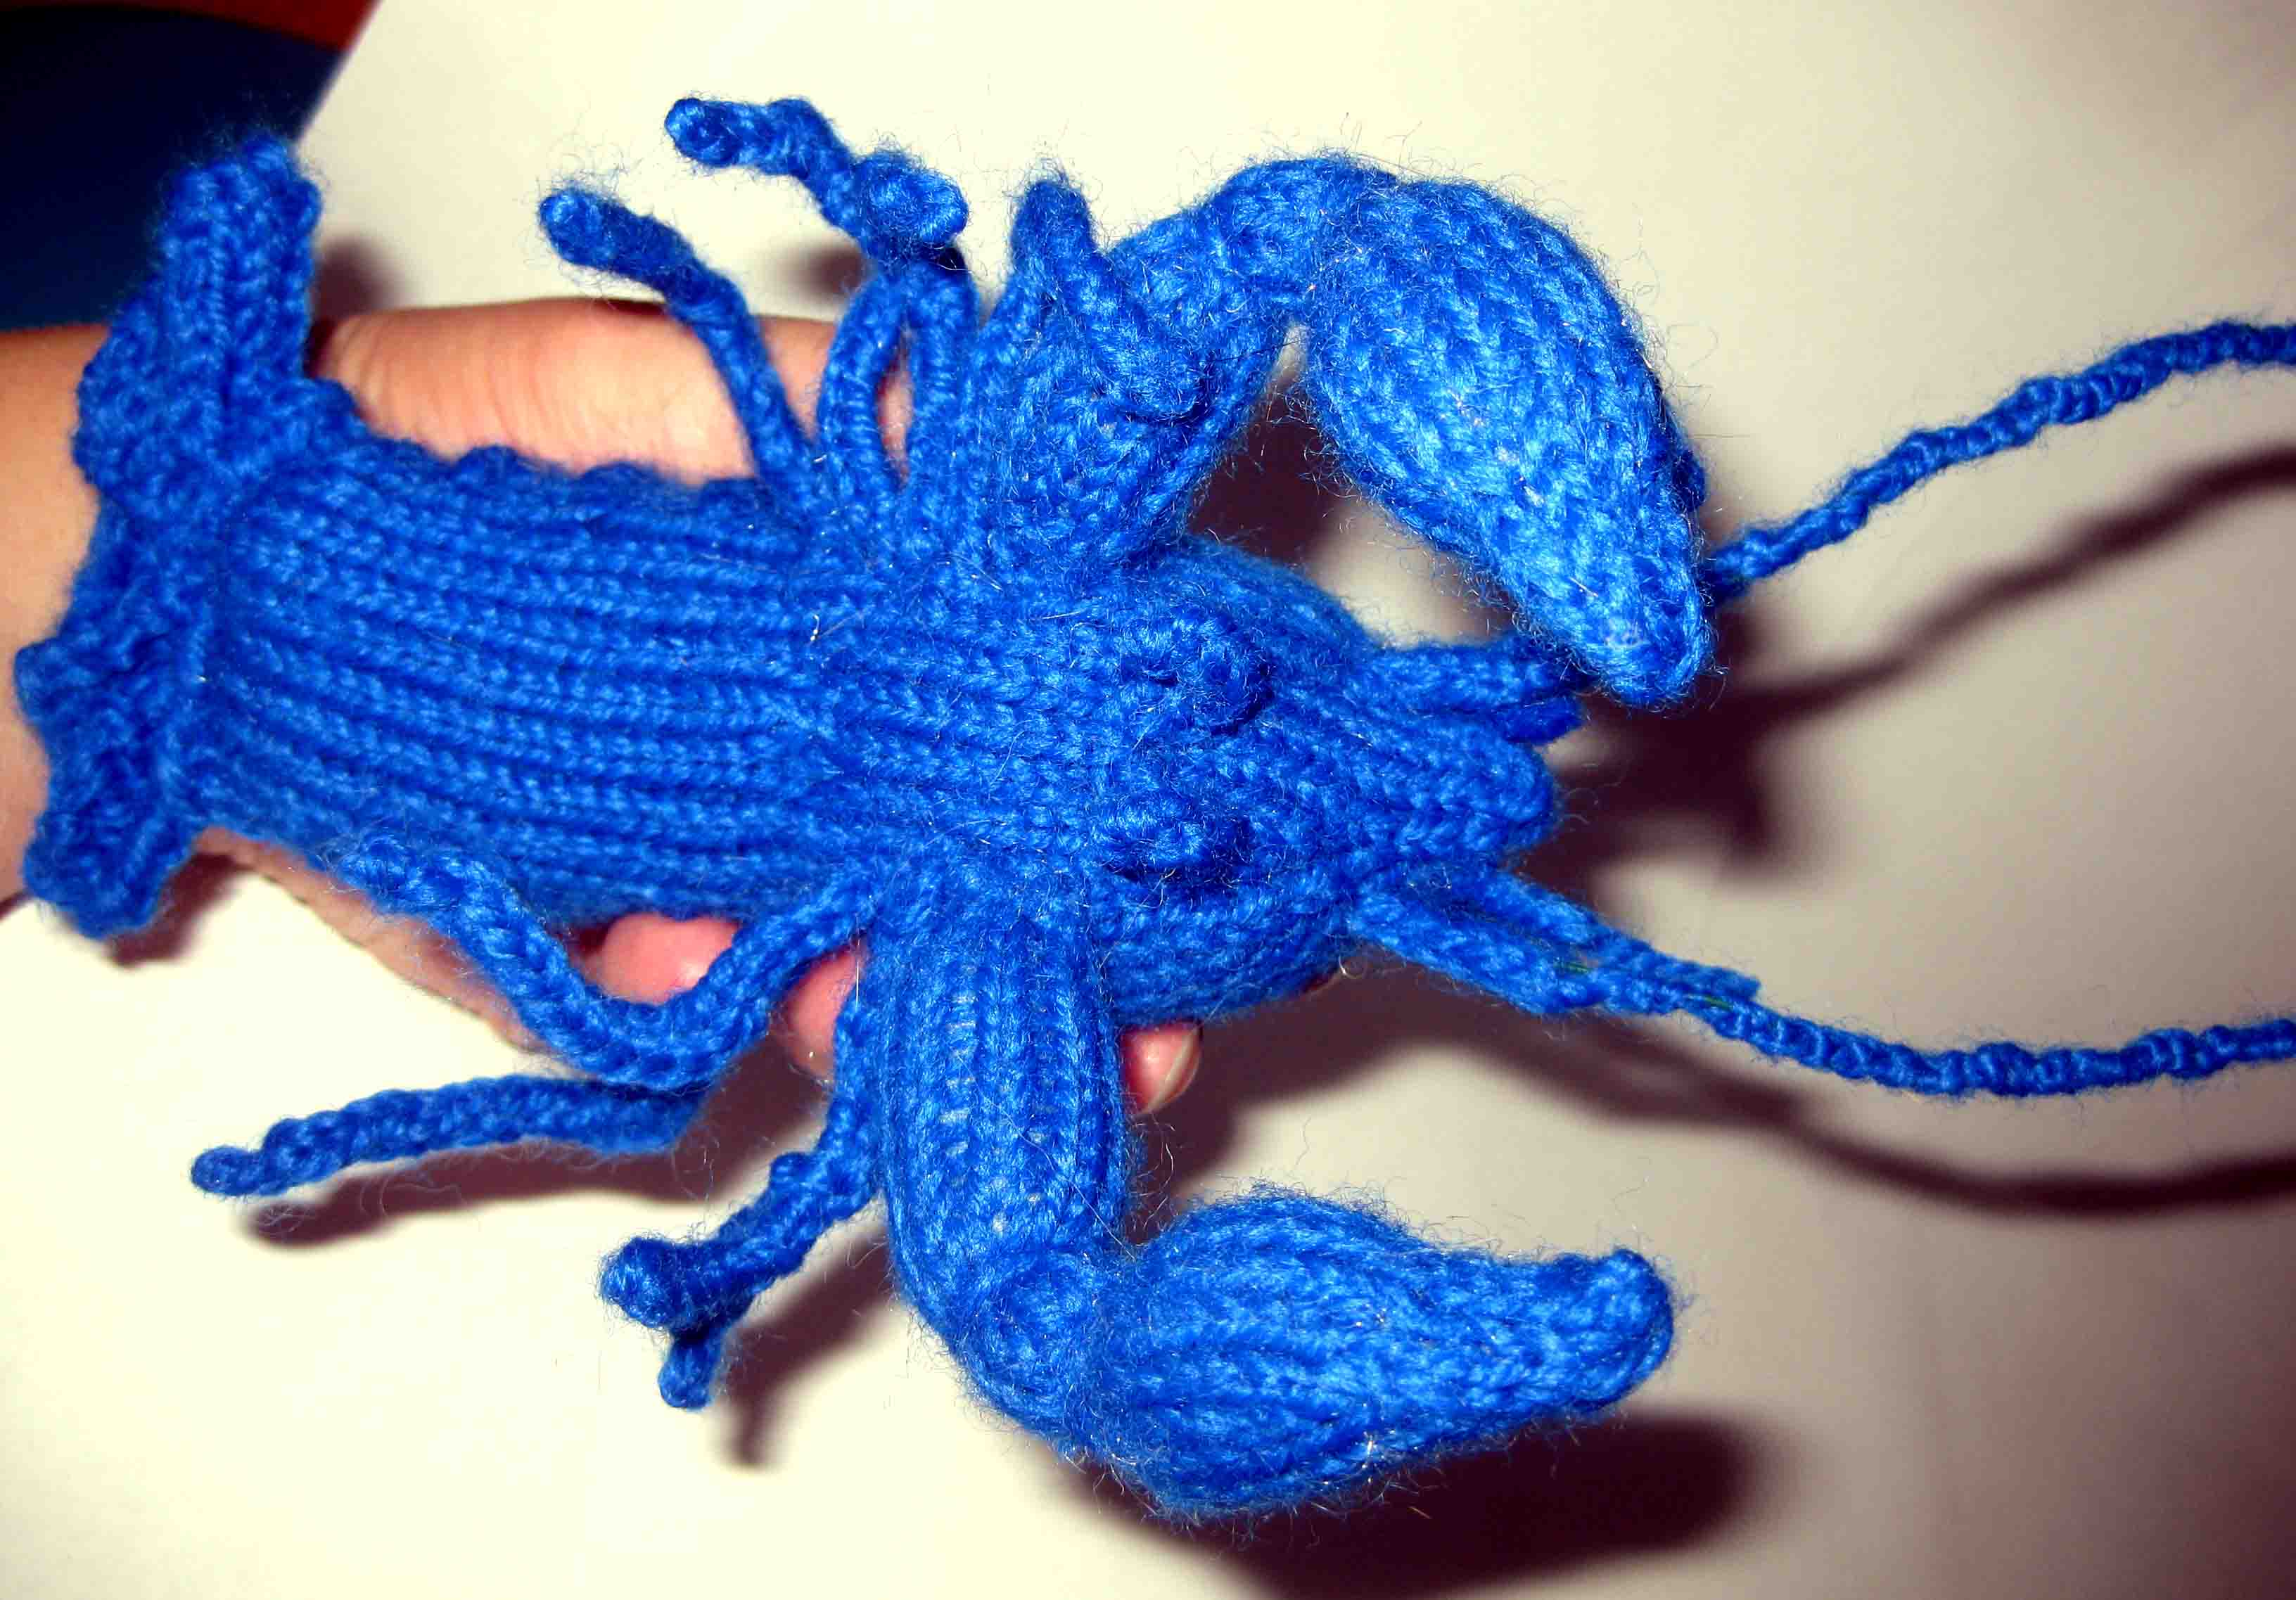 Knitting: Blue Crayfish | Random Bits of Projects